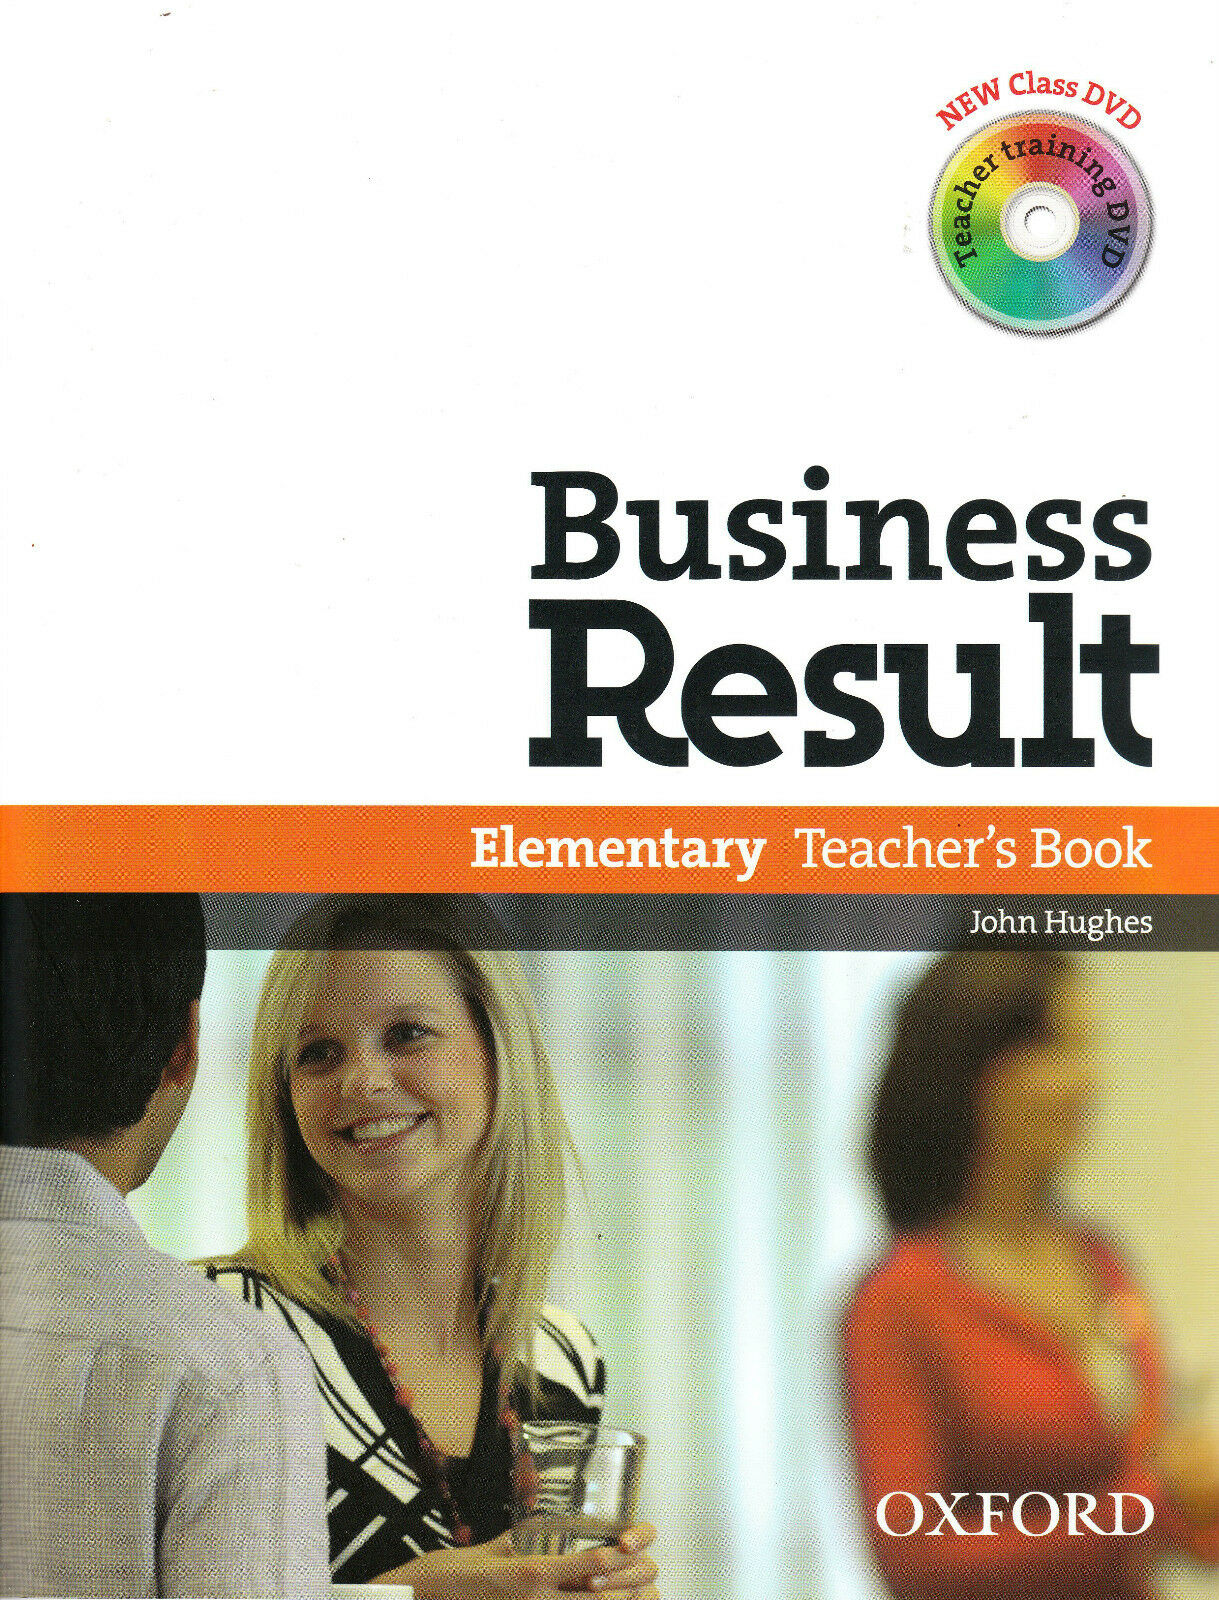 Face2face starter teachers book with dvd array oxford business result elementary teacher u0027s book with 2 dvd u0027s new rh picclick fandeluxe Gallery